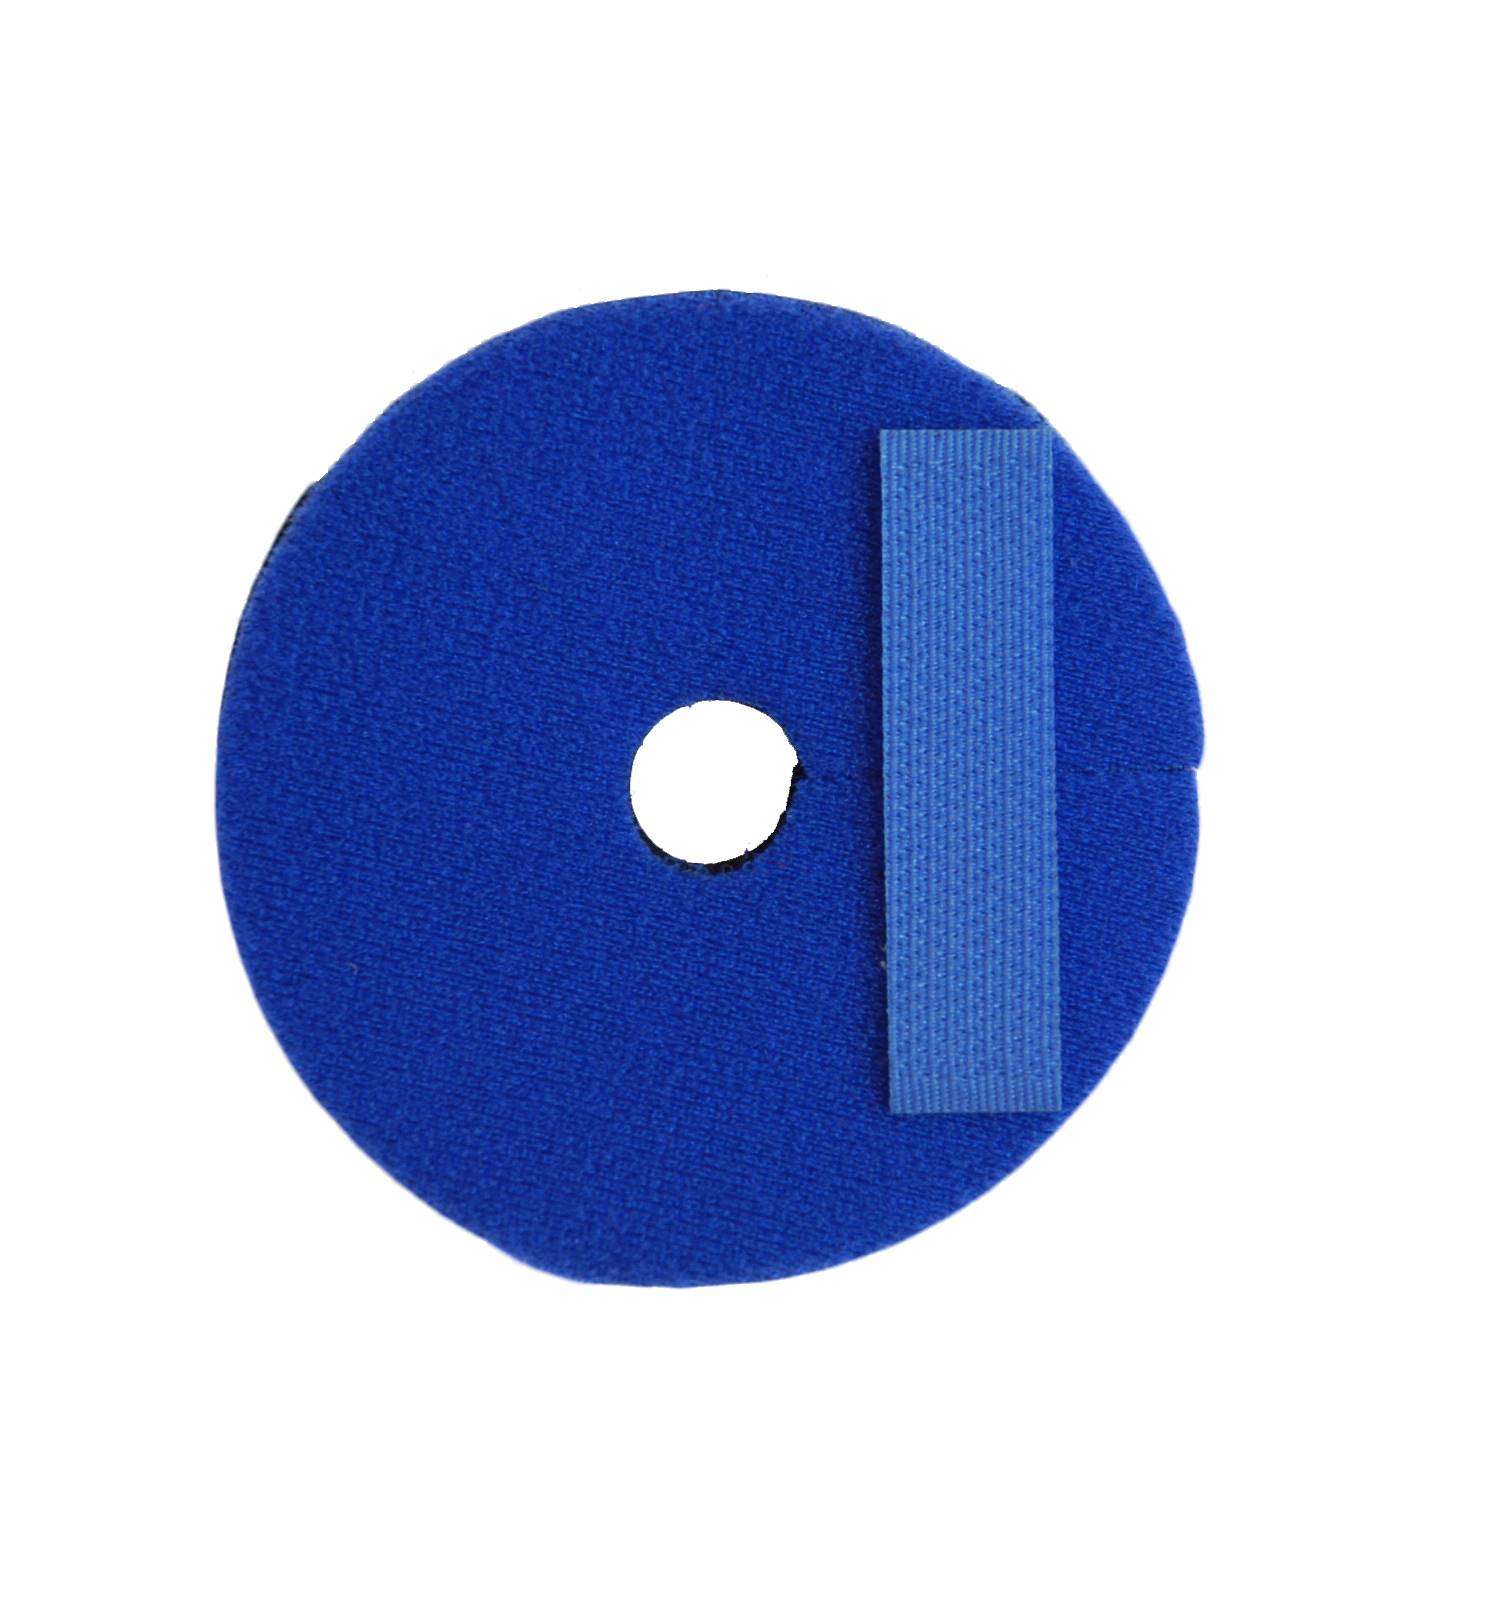 Partrade Neoprene Bit Guard With hook & loop fastener